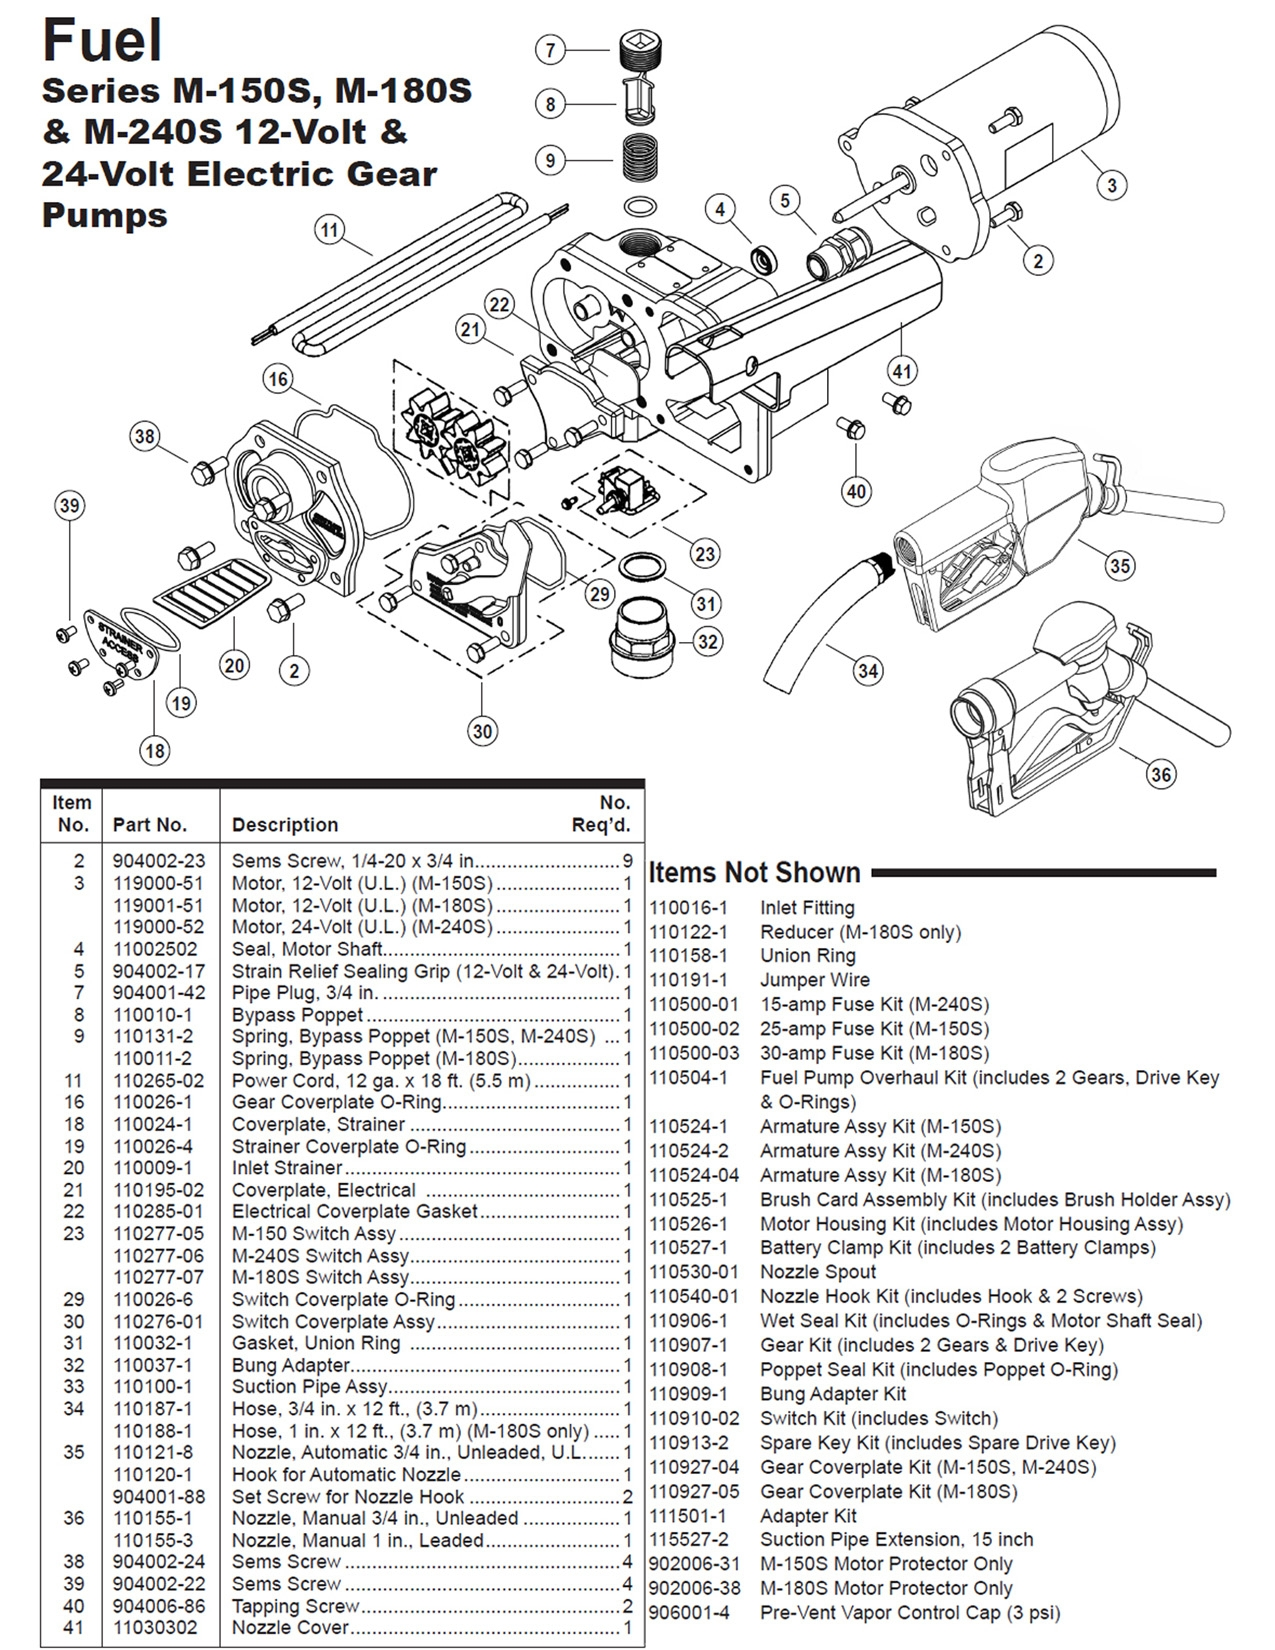 gpi fuel pump wiring diagram Collection-Ponent Tuthill Transfer Pump Wiring Diagram Fill Rite Fuel Recessed Lighting Wiring Diagram Sample 1-o